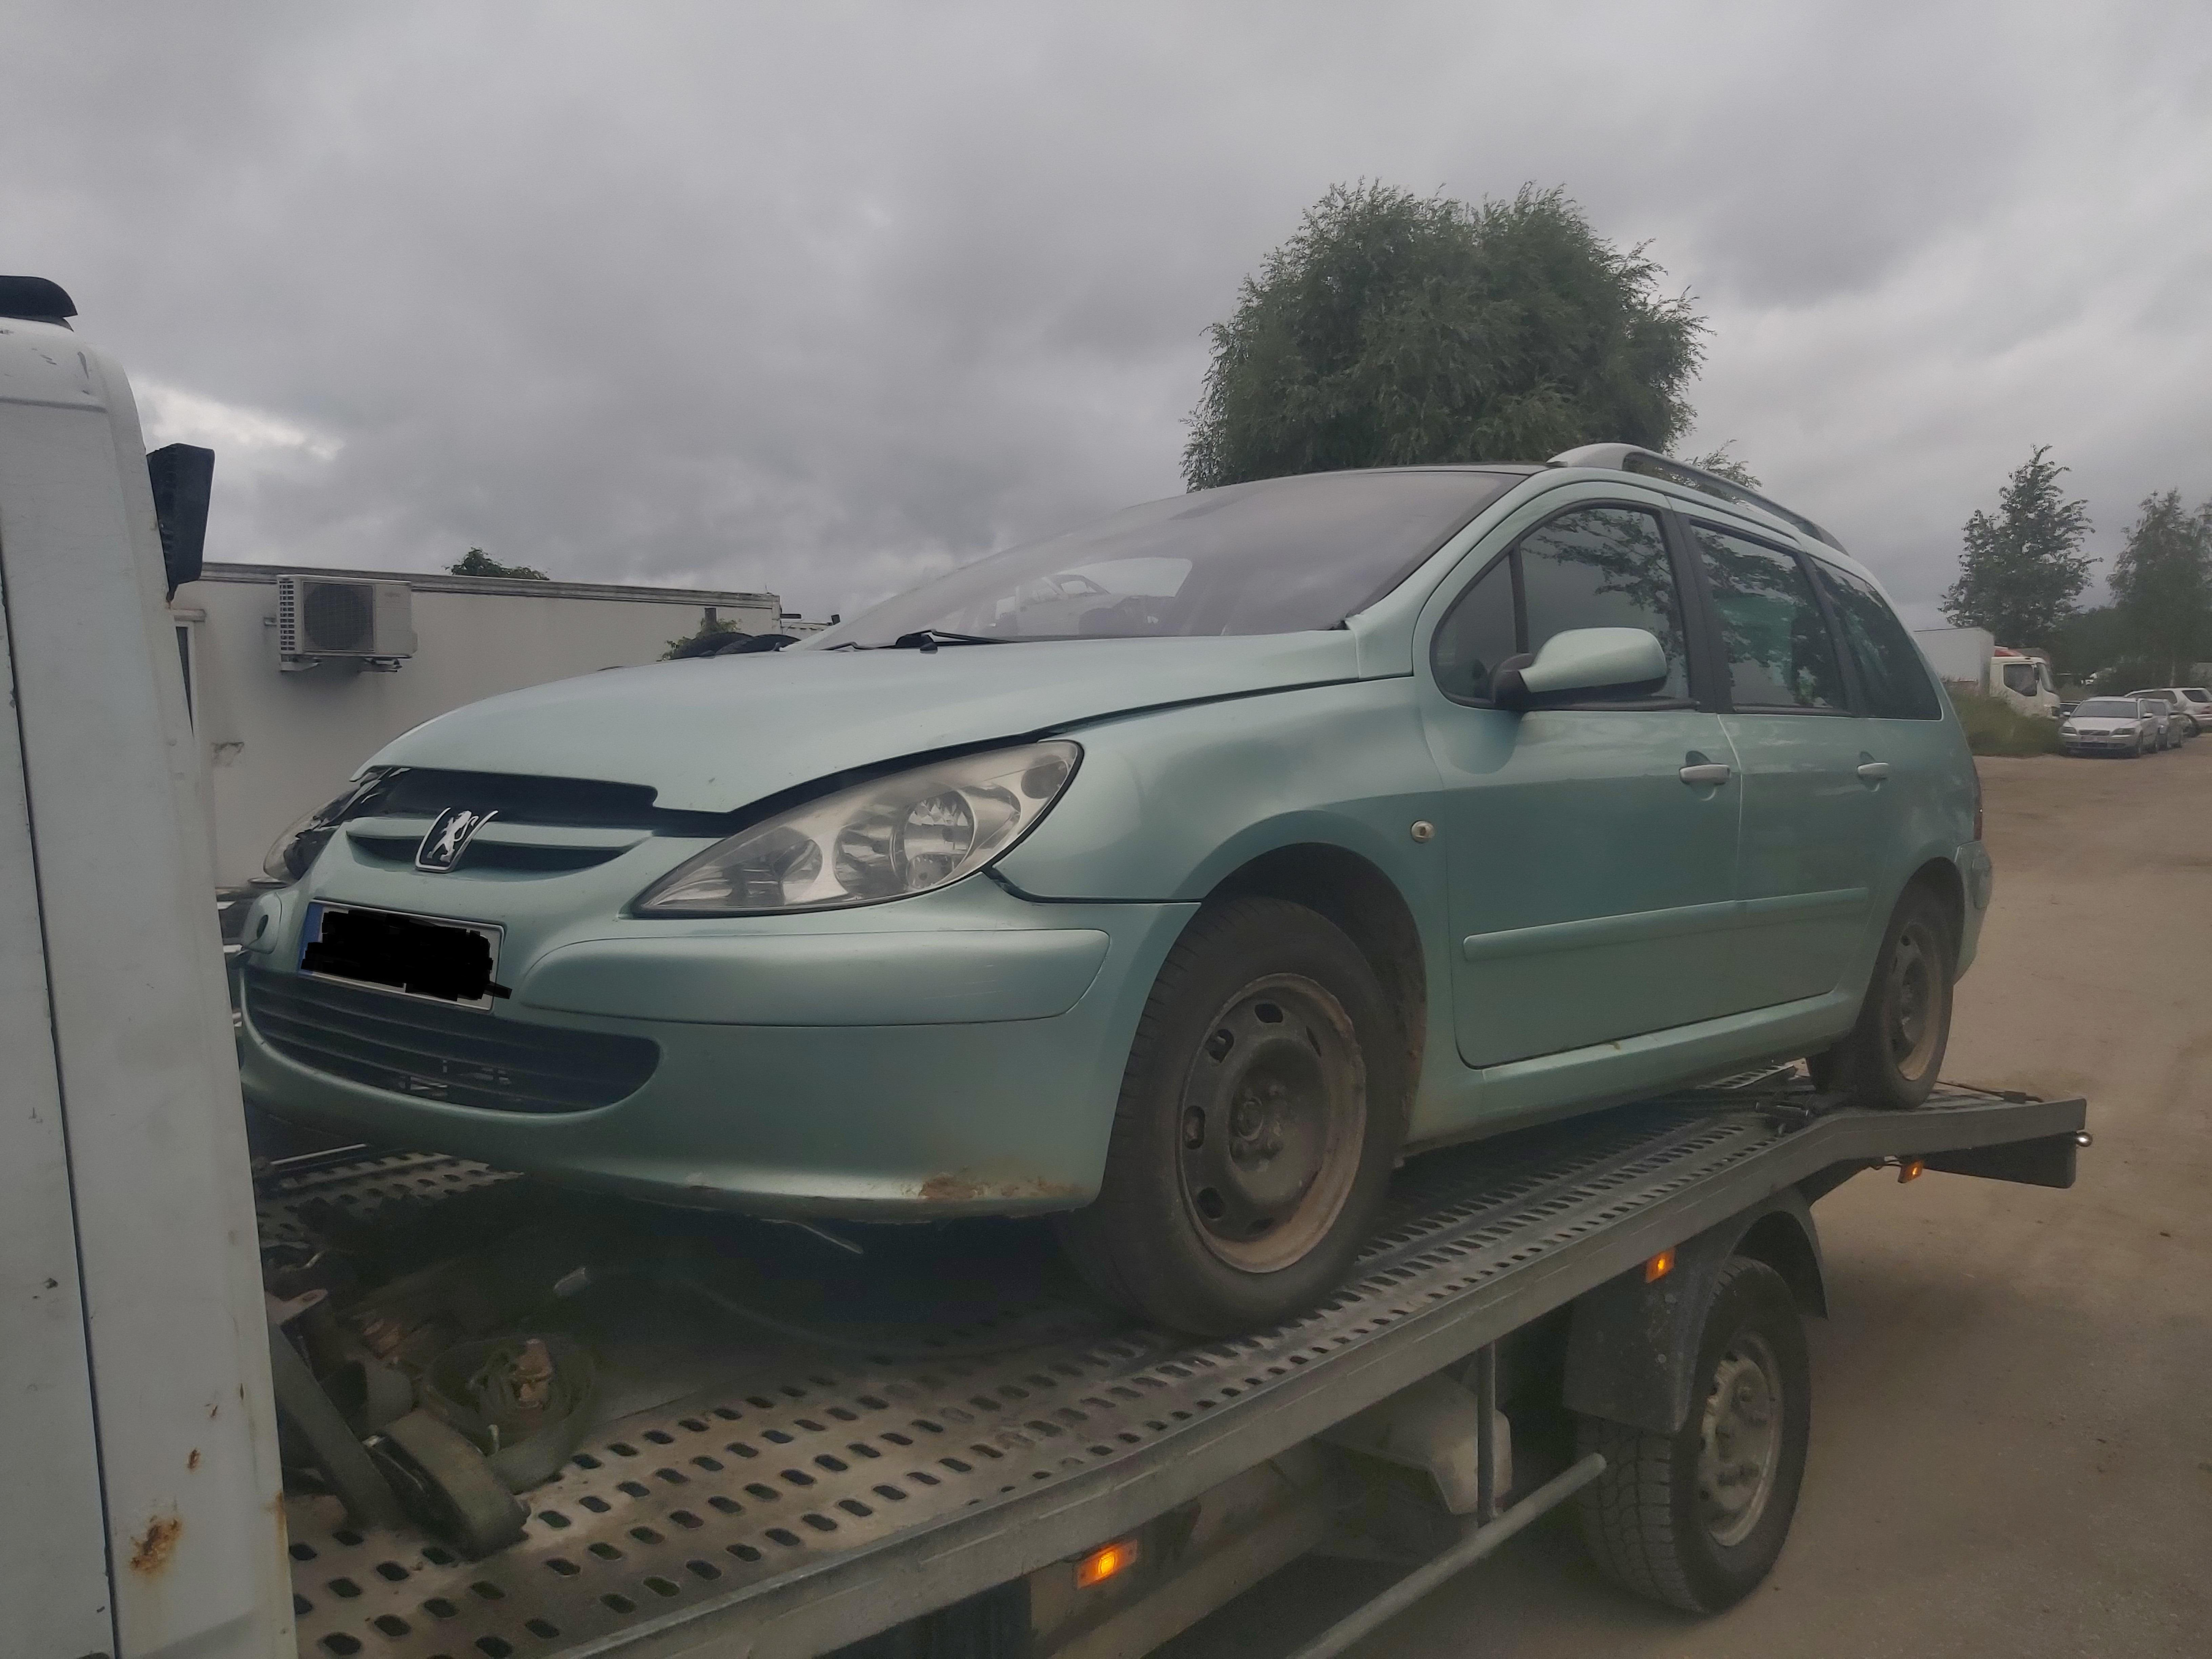 Used Car Parts Foto 8 Peugeot 307 2003 2.0 Mechanical Universal 4/5 d. Green 2020-7-30 A5478